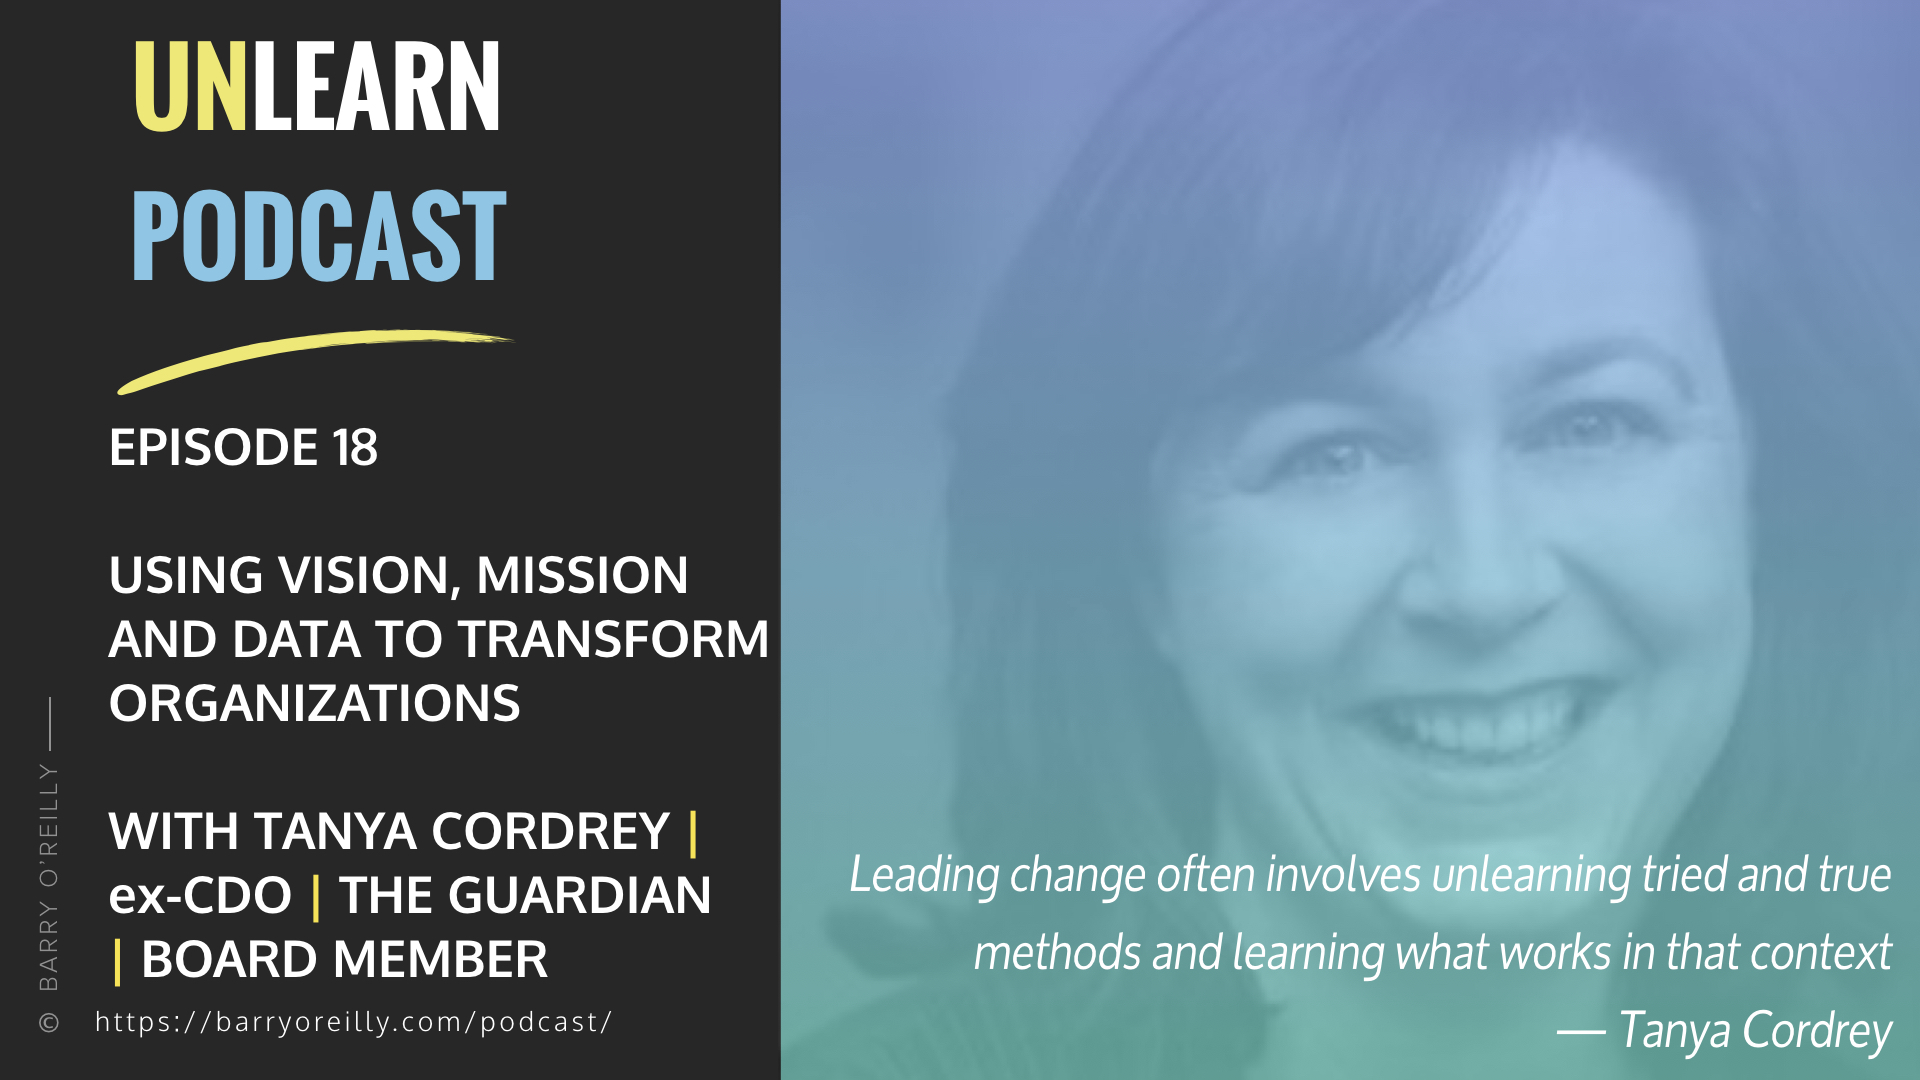 Using Vision, Mission and Data To Transform Organizations with Tanya Cordrey